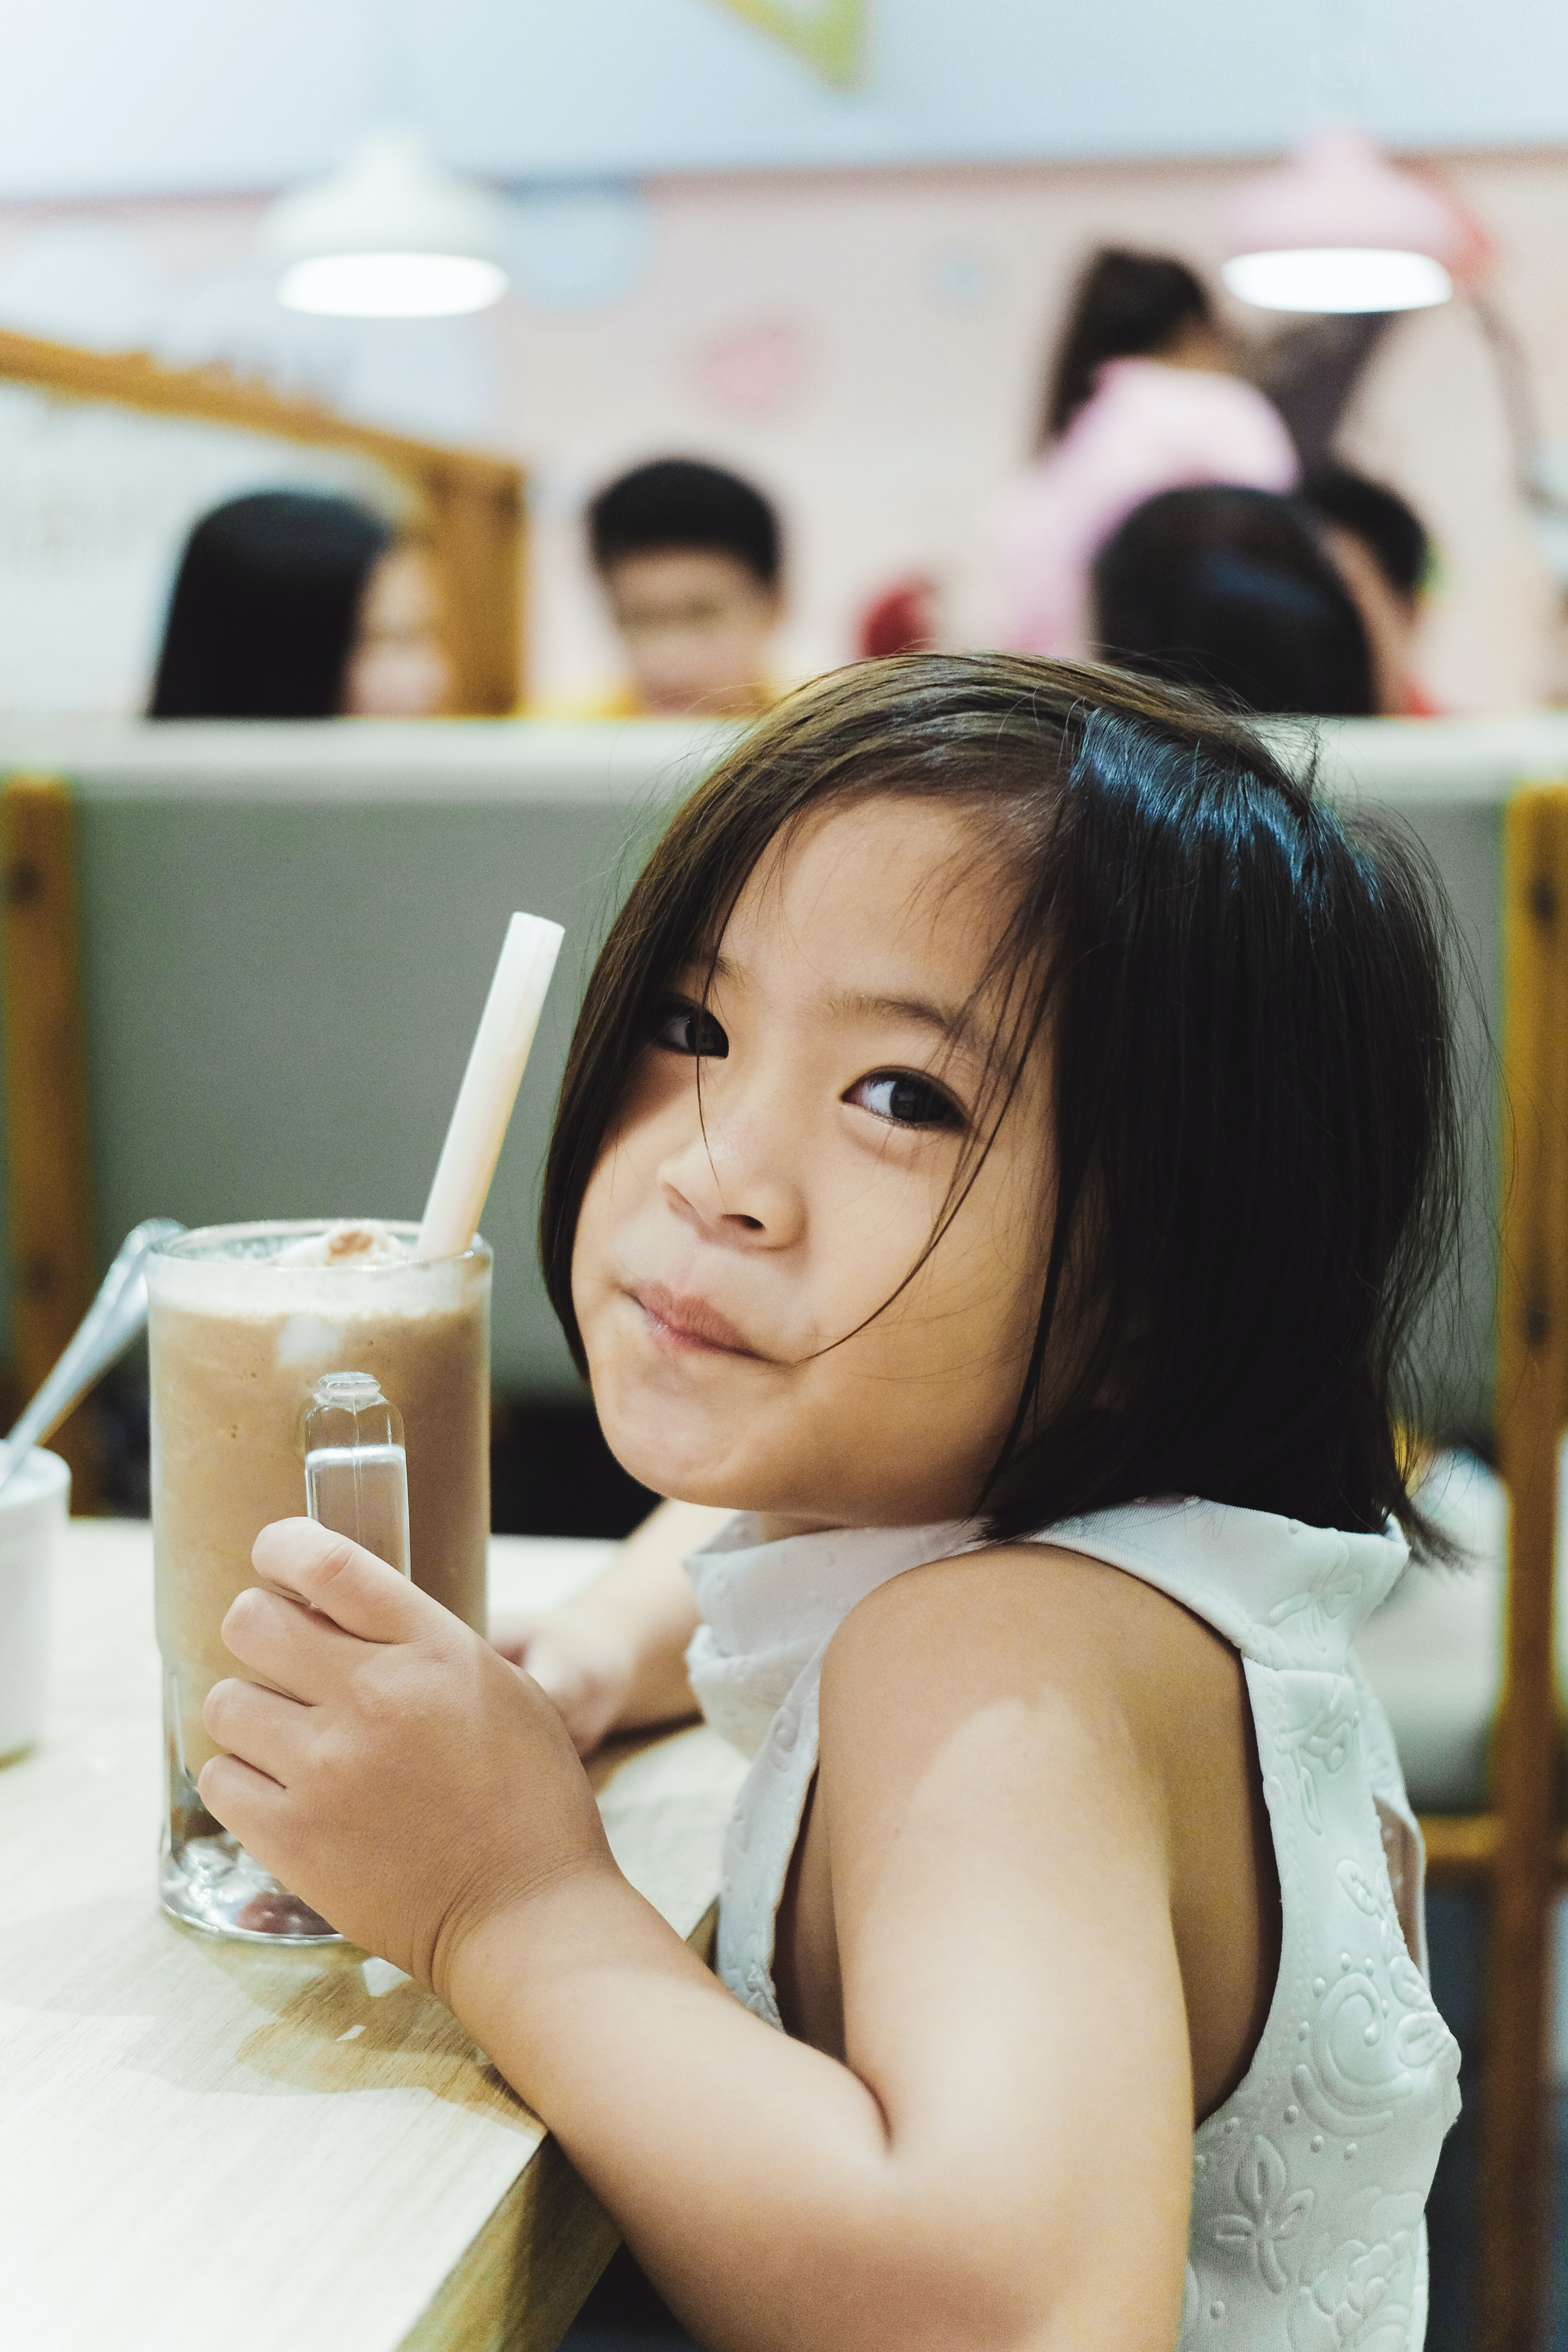 girl holding cup filled with black liquid